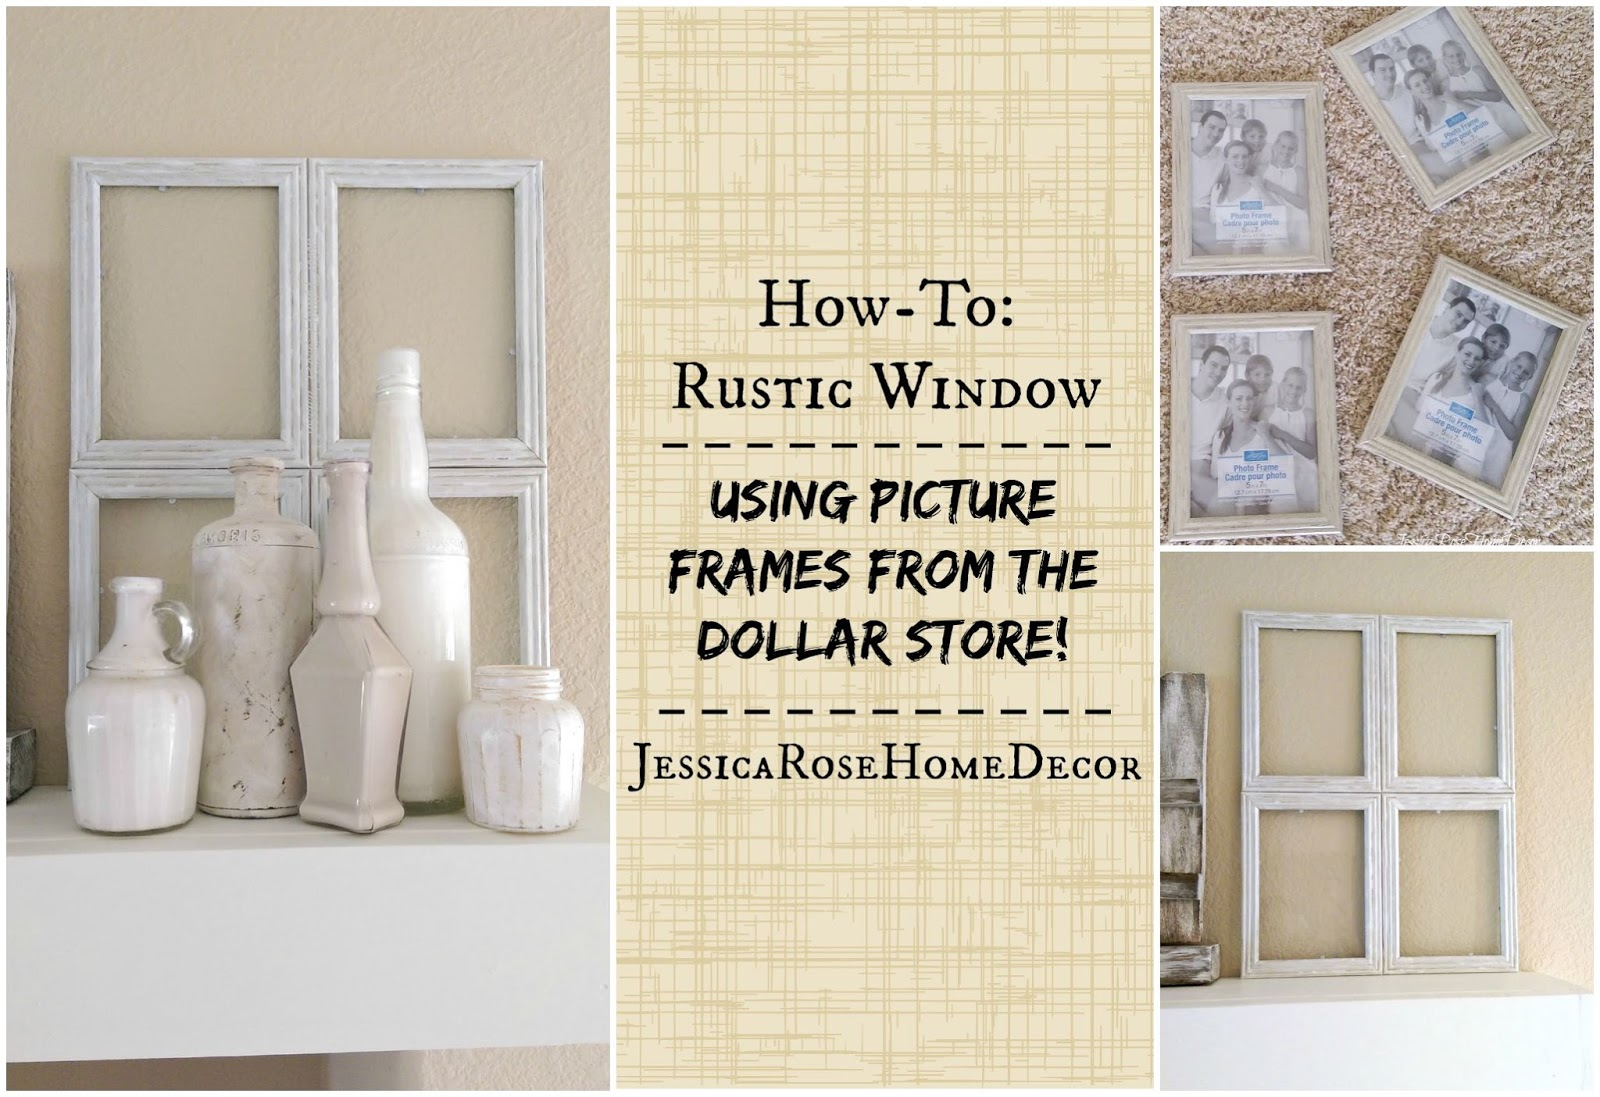 Jessicarose home decor how to rustic window using dollar store picture frames - Dollar store home decor ideas pict ...